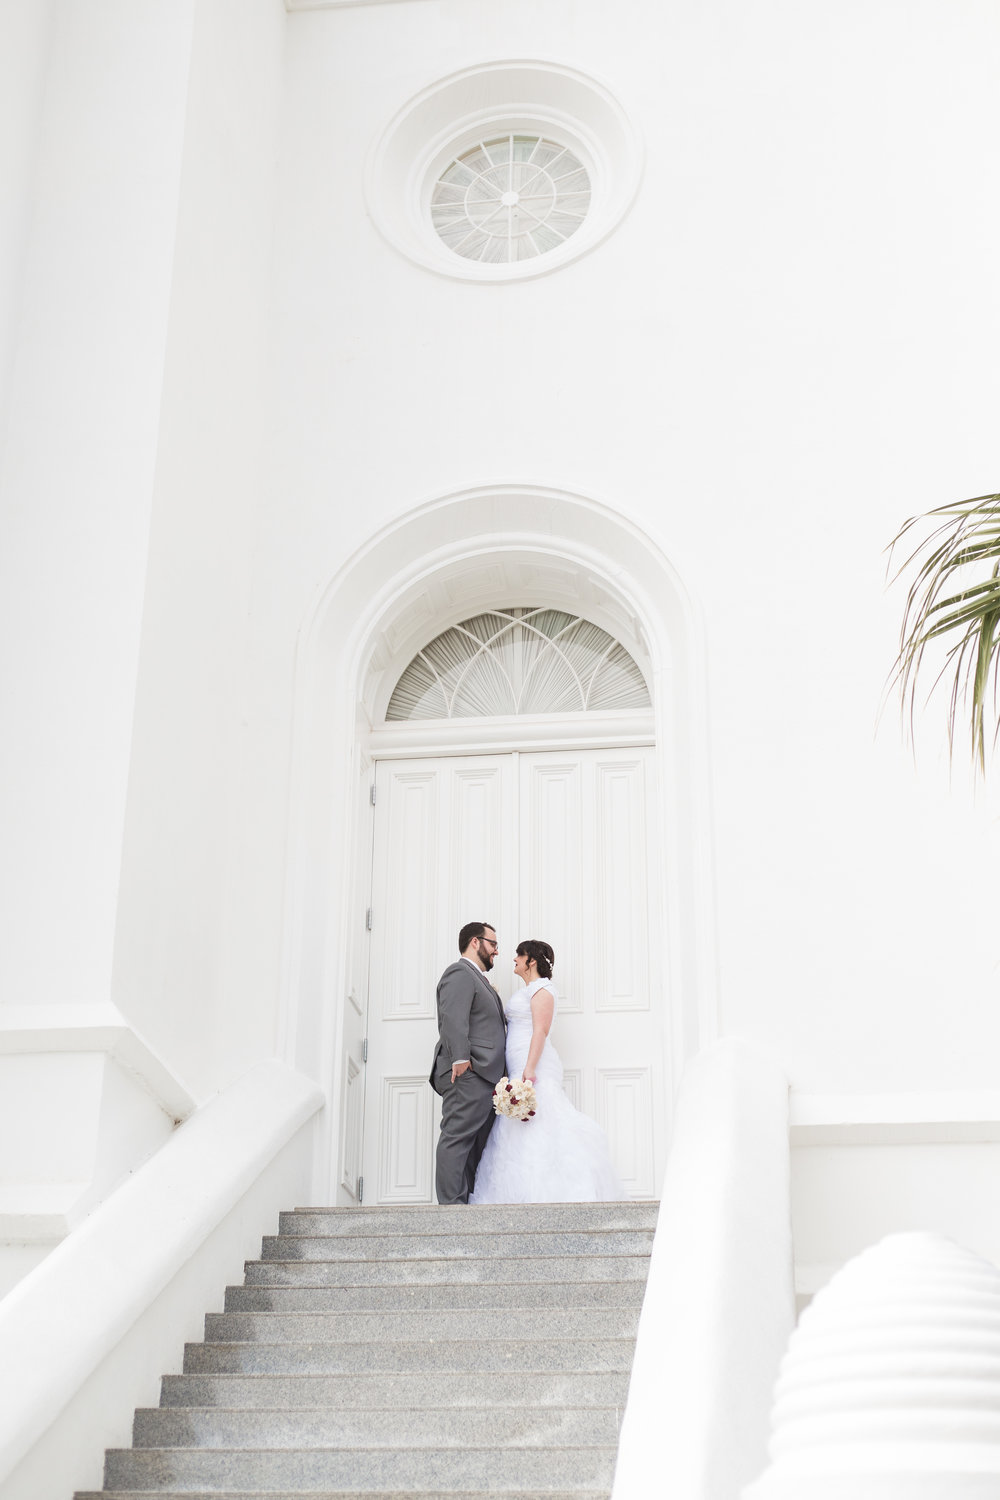 Courtney Volksen Photography | Winter Wedding in St. George Utah at the LDS Temple